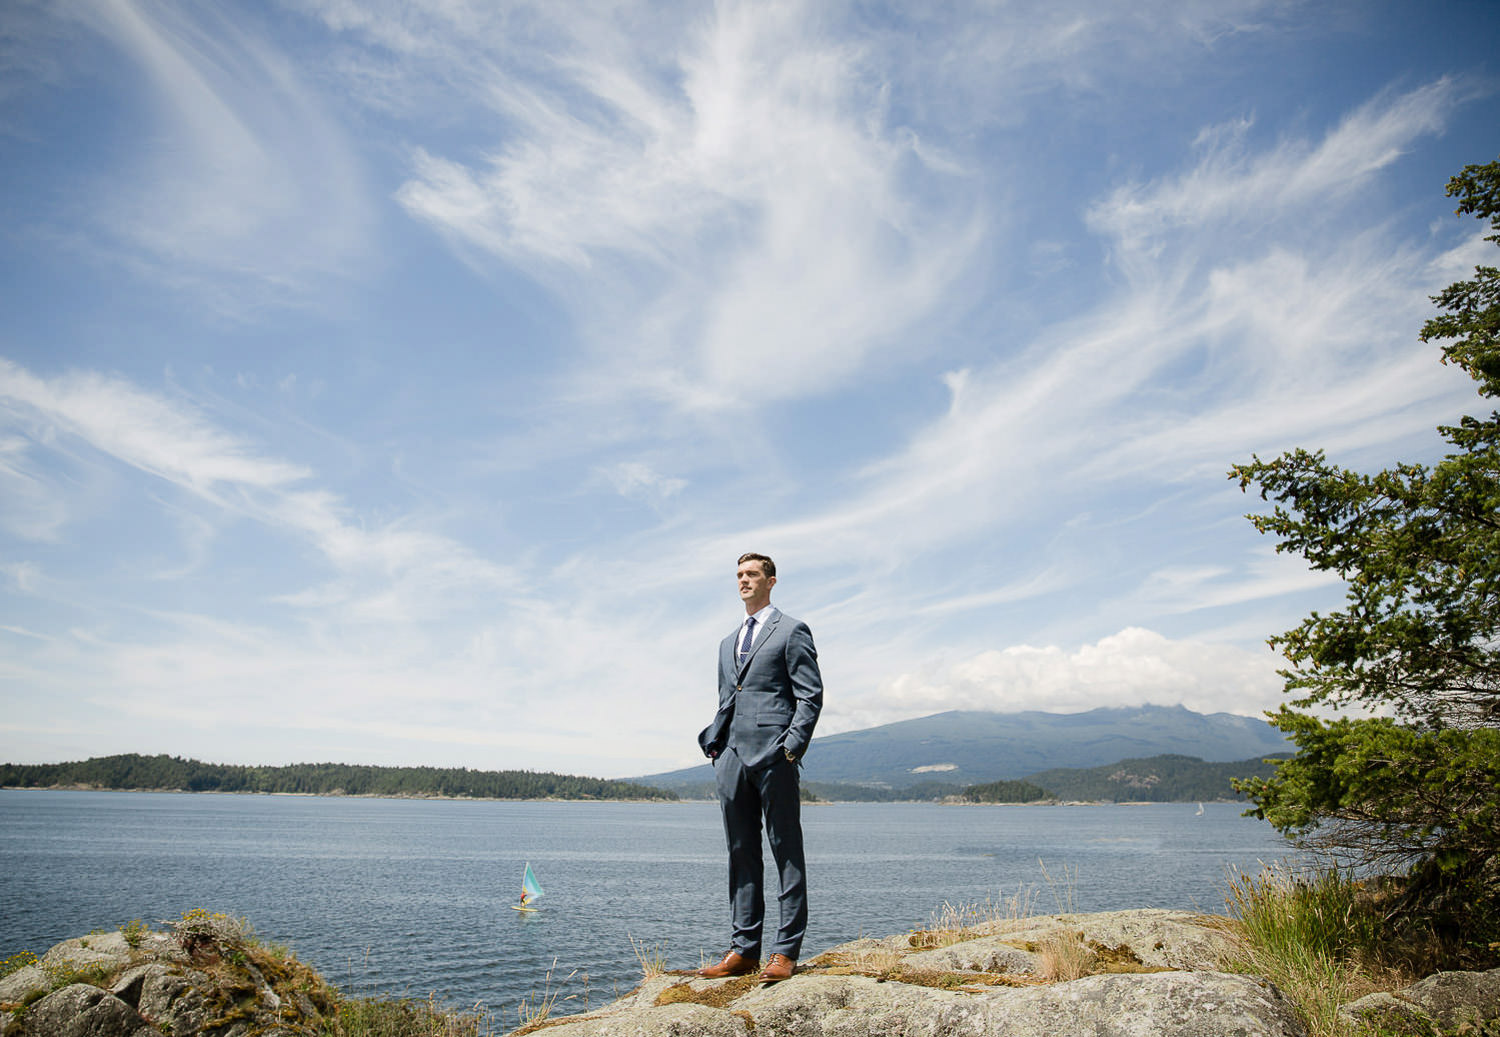 Intimate seaside bohemian wedding - The groom is waiting his beautiful bride | Photo: Camilla Anchisi